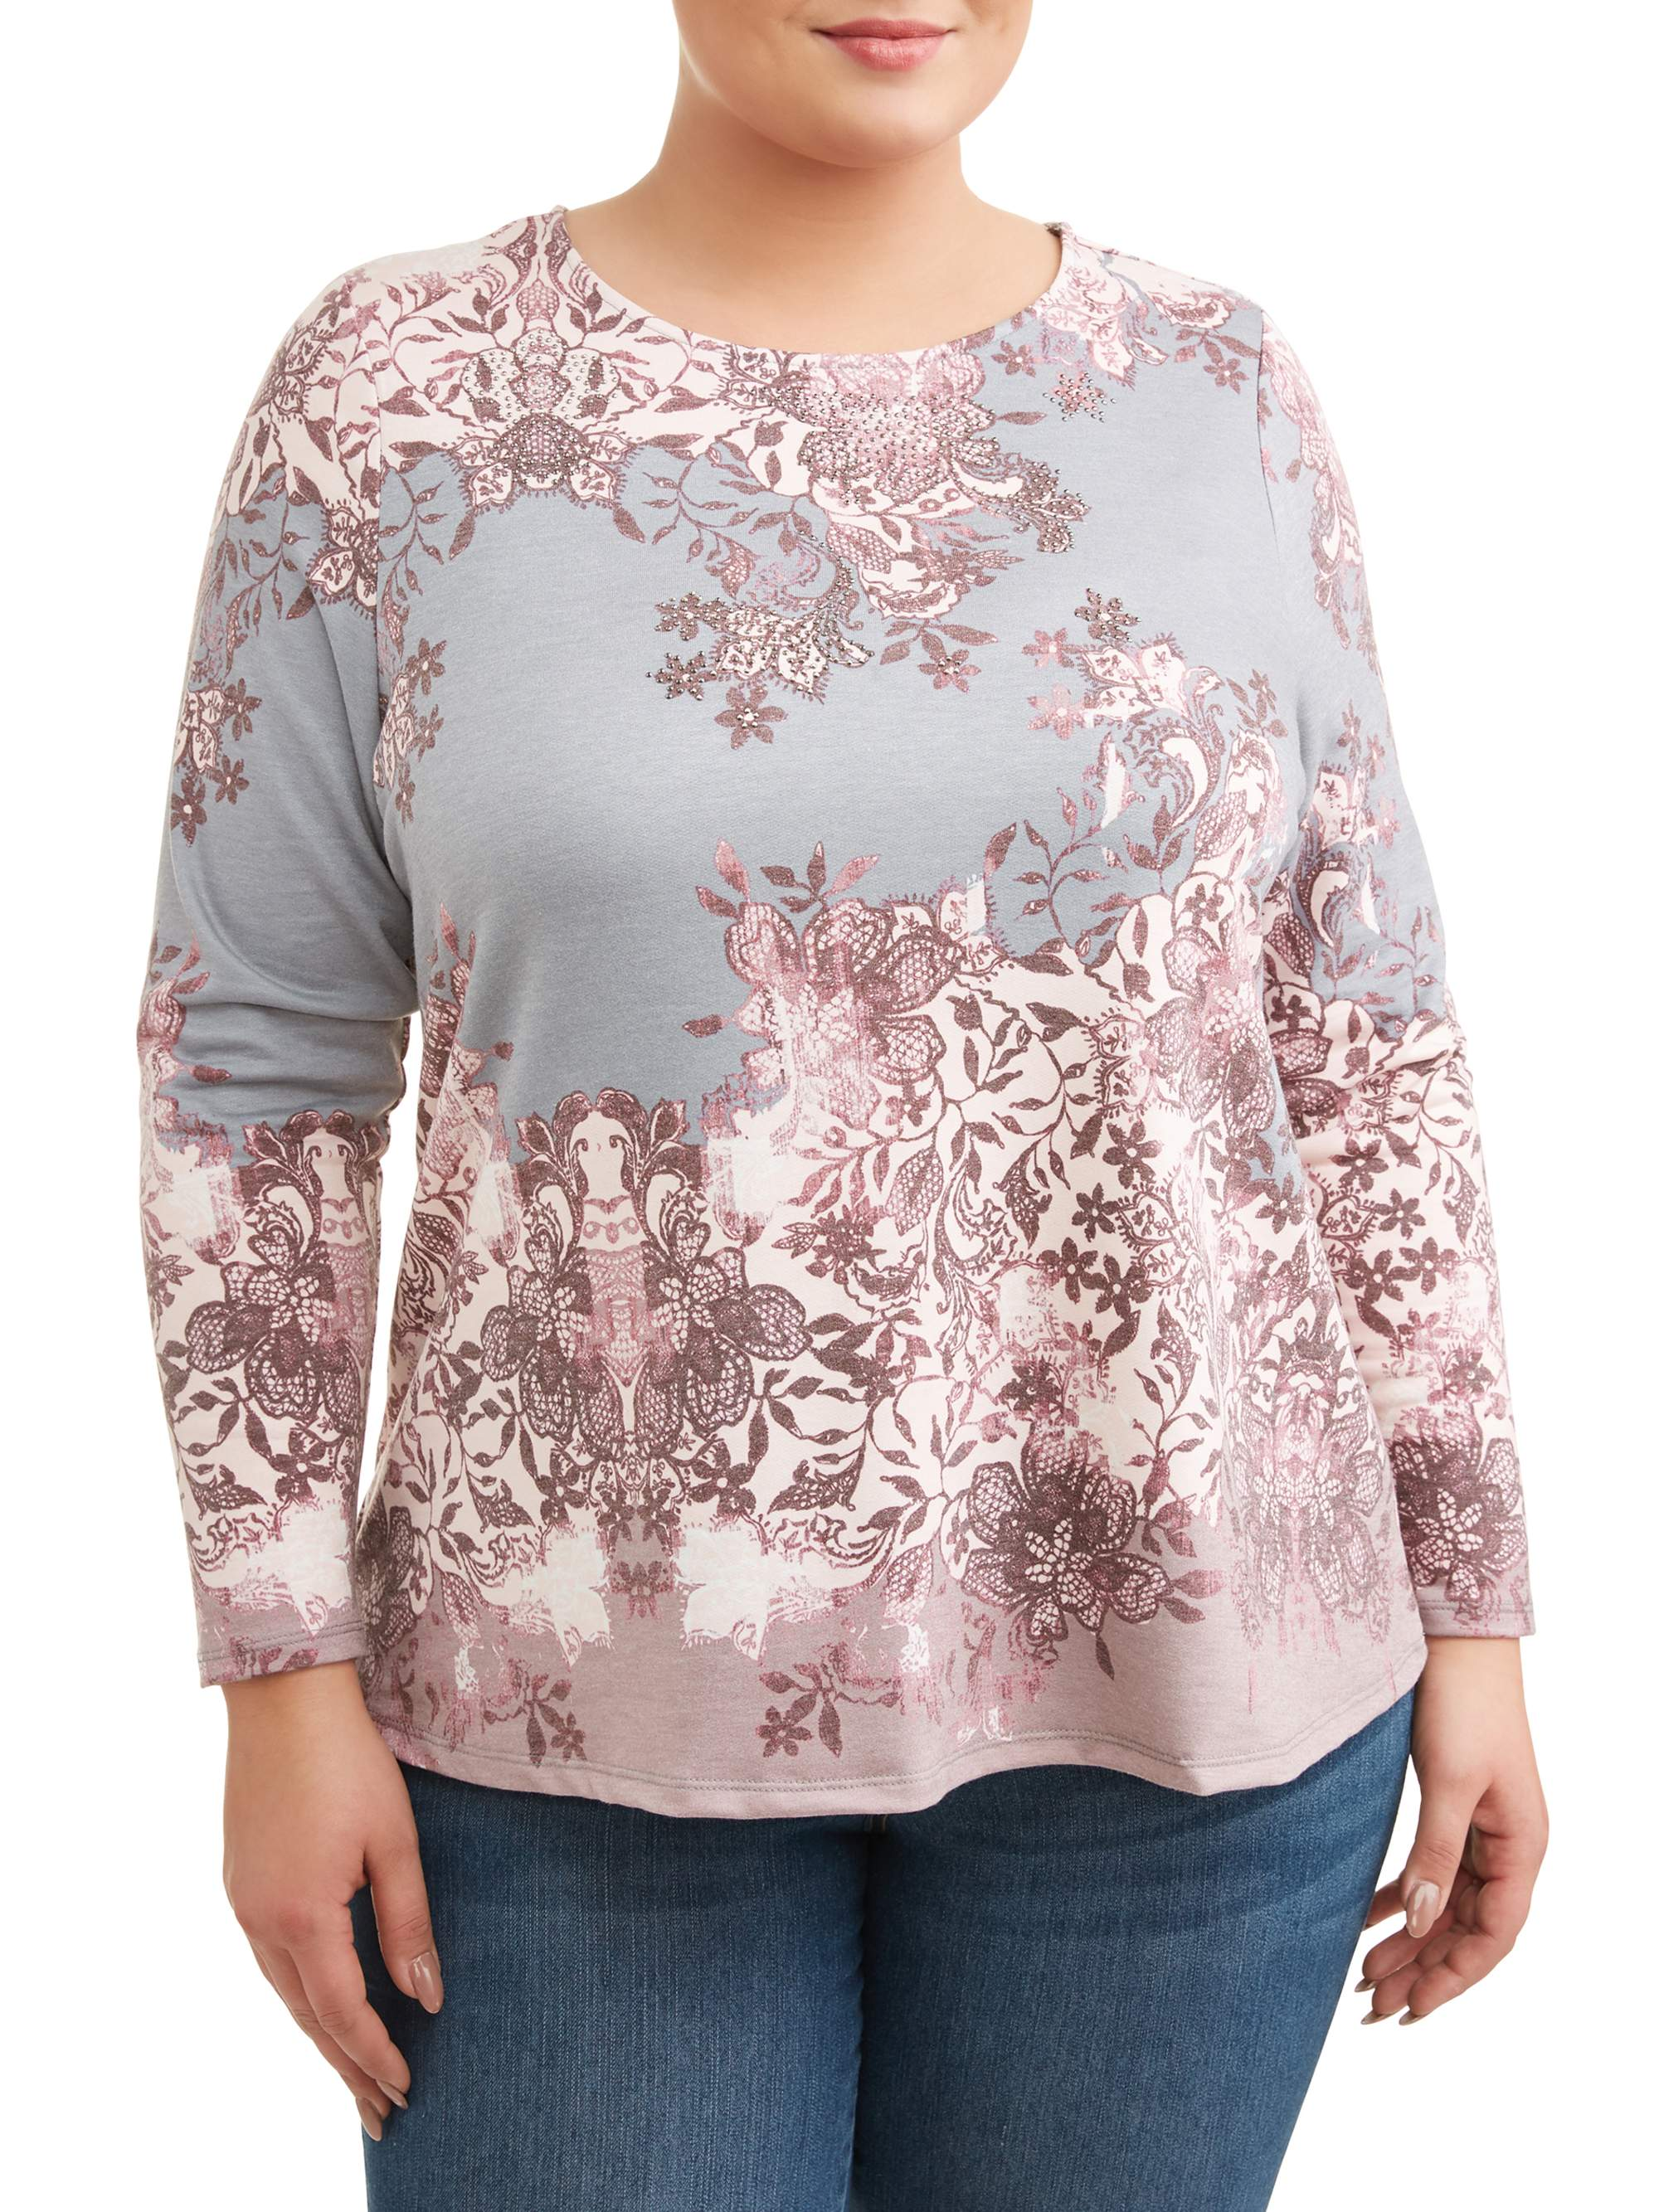 Women's Plus Size Sublimated High/Low Top